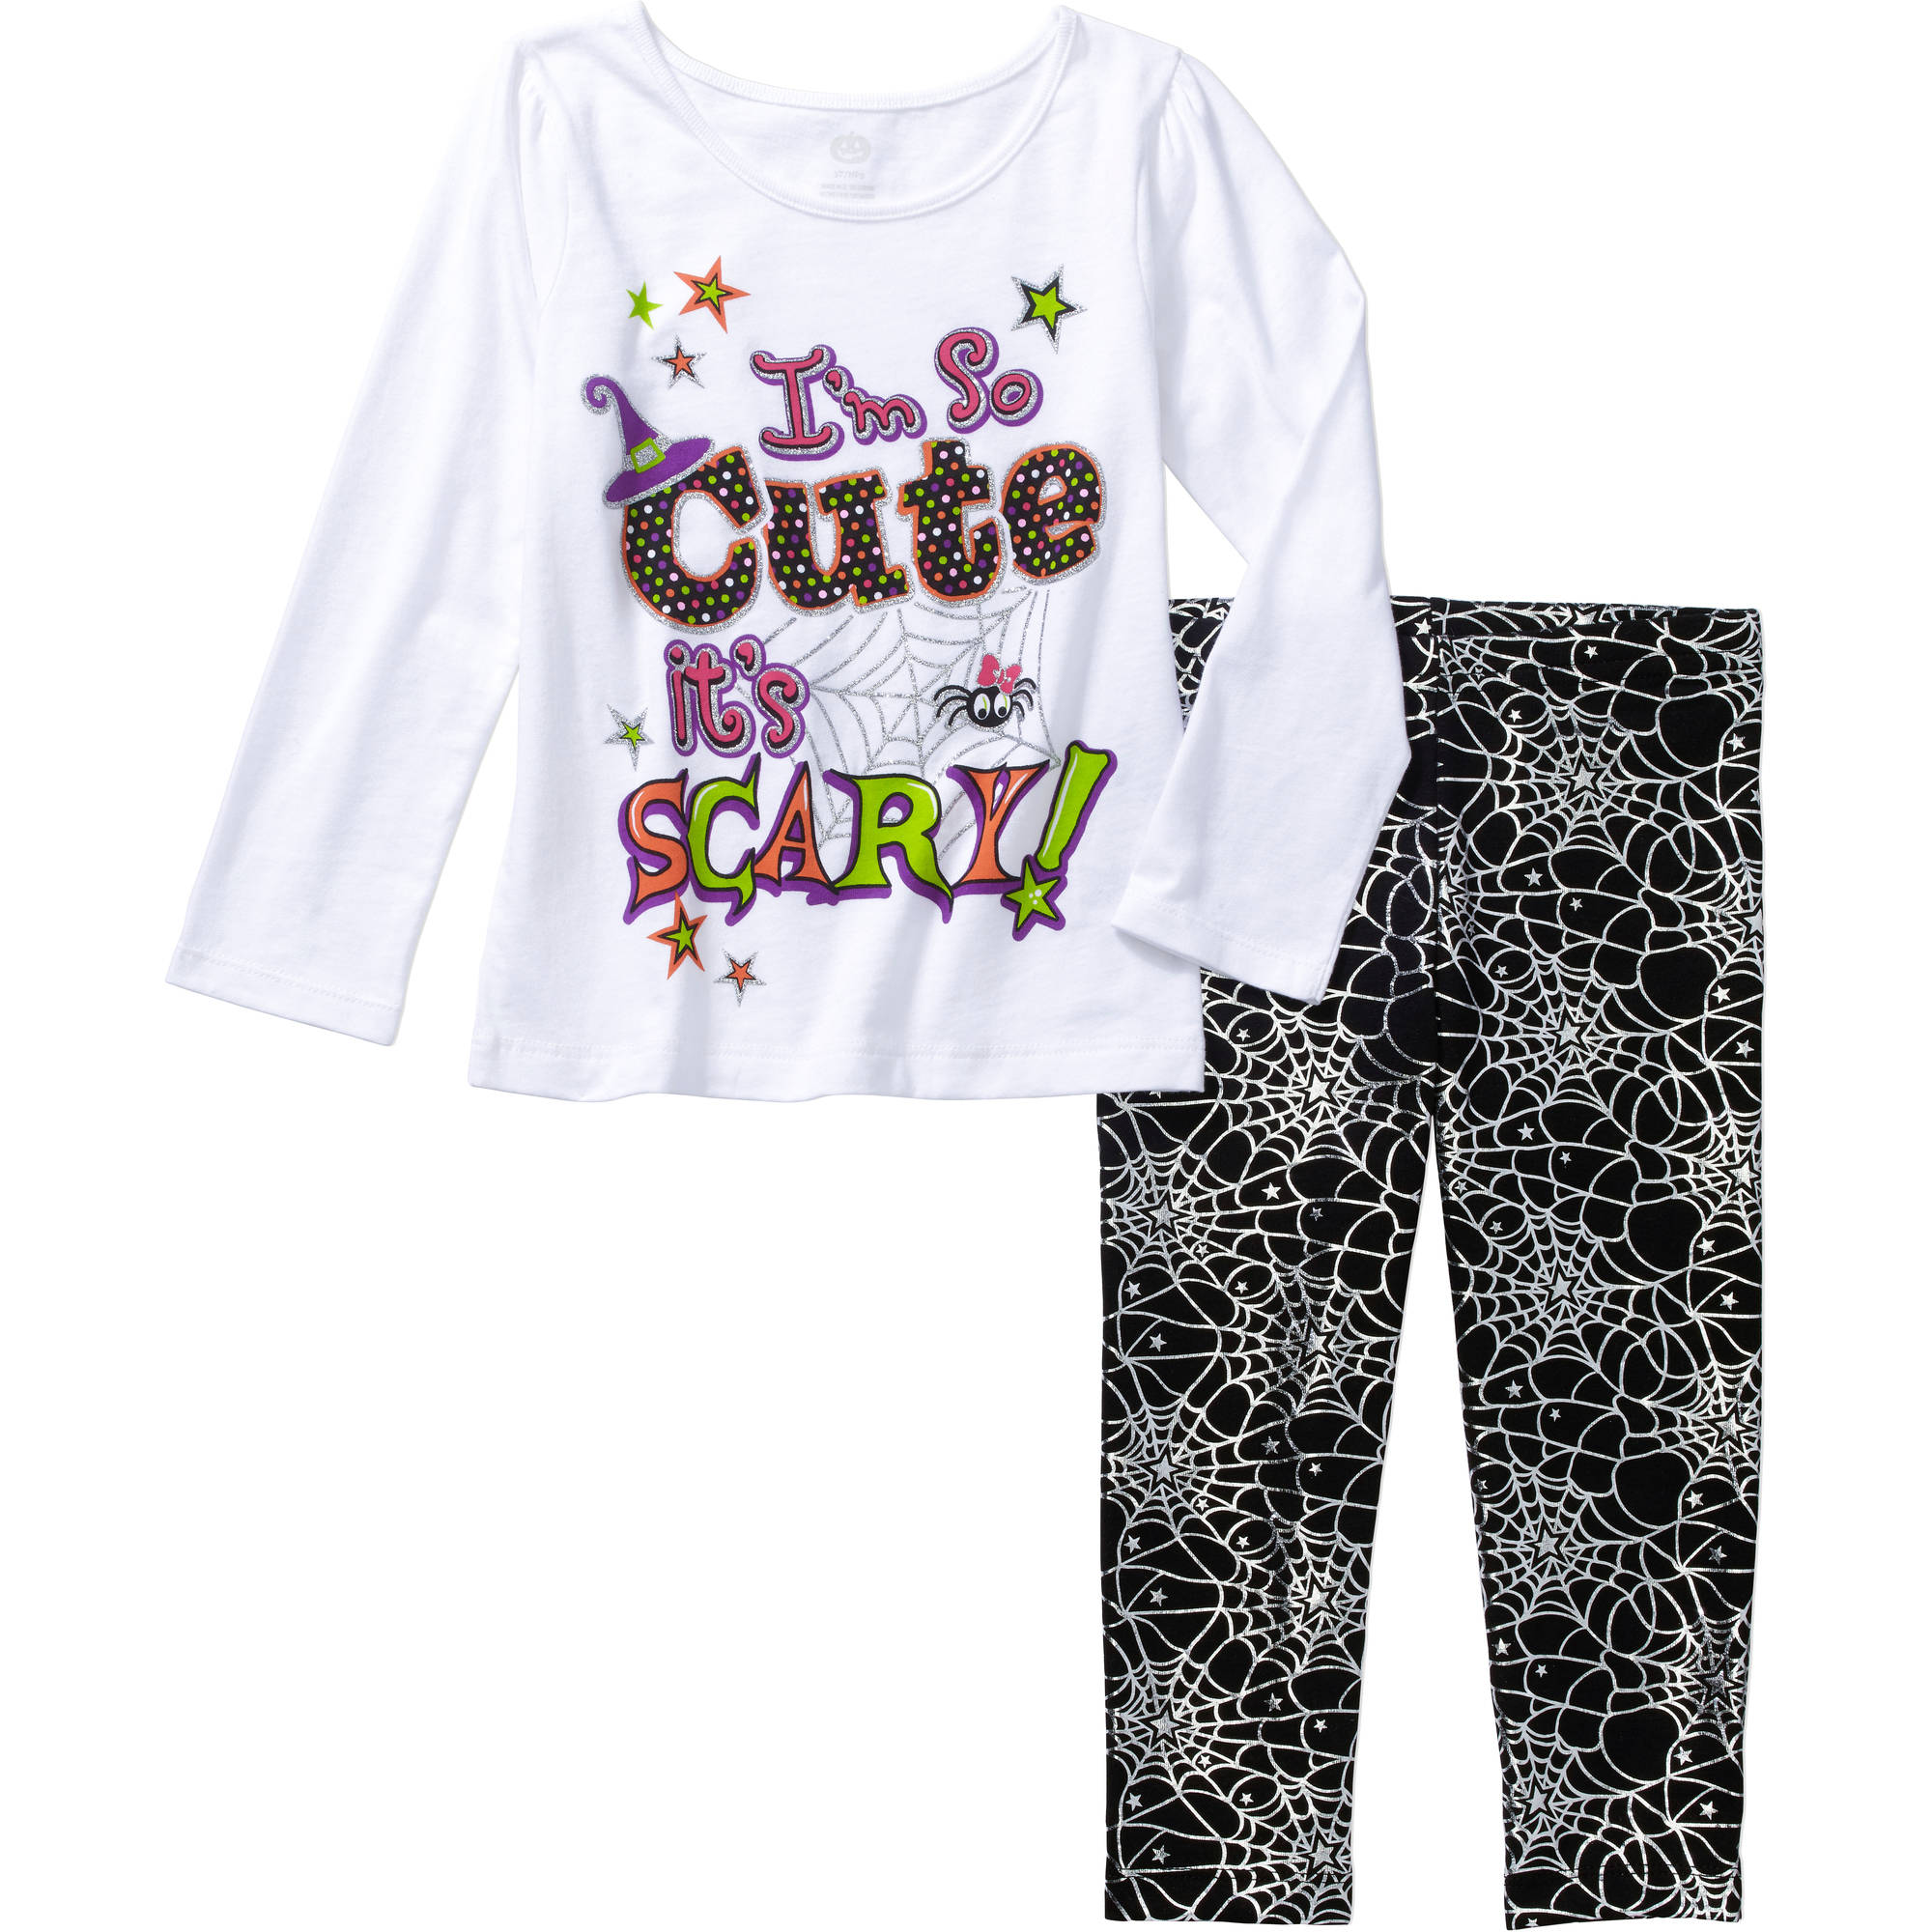 Baby Toddler Girl Halloween Long Sleeve Graphic Tee and Leggings 2-Piece Outfit Set